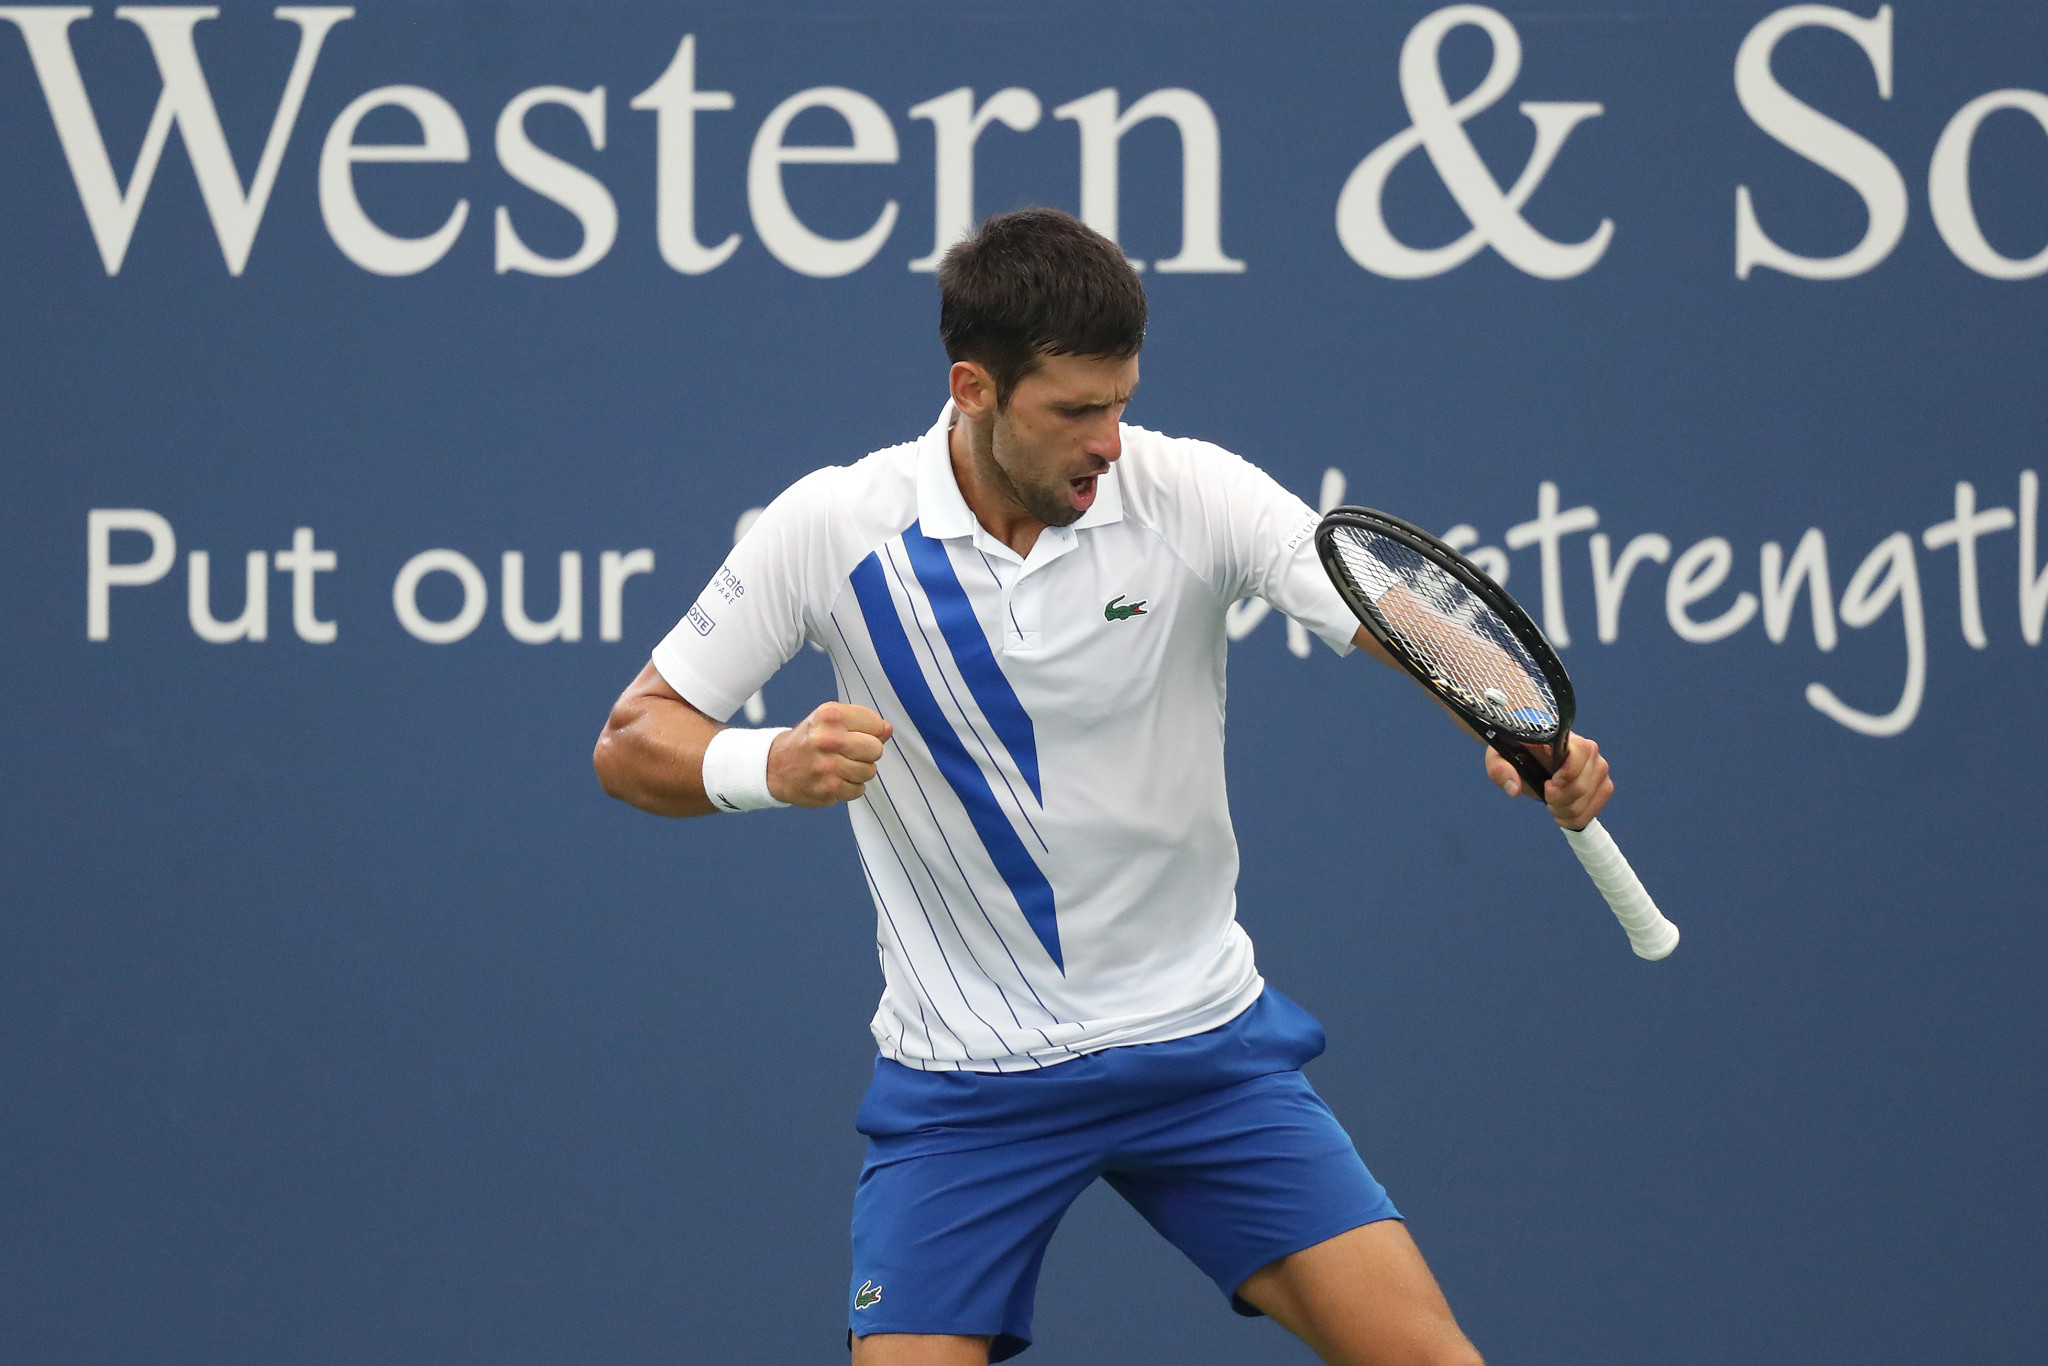 Novak Djokovic equalled Rafael Nadal's record of 35 Masters 1000 titles with victory in New York ©Getty Images